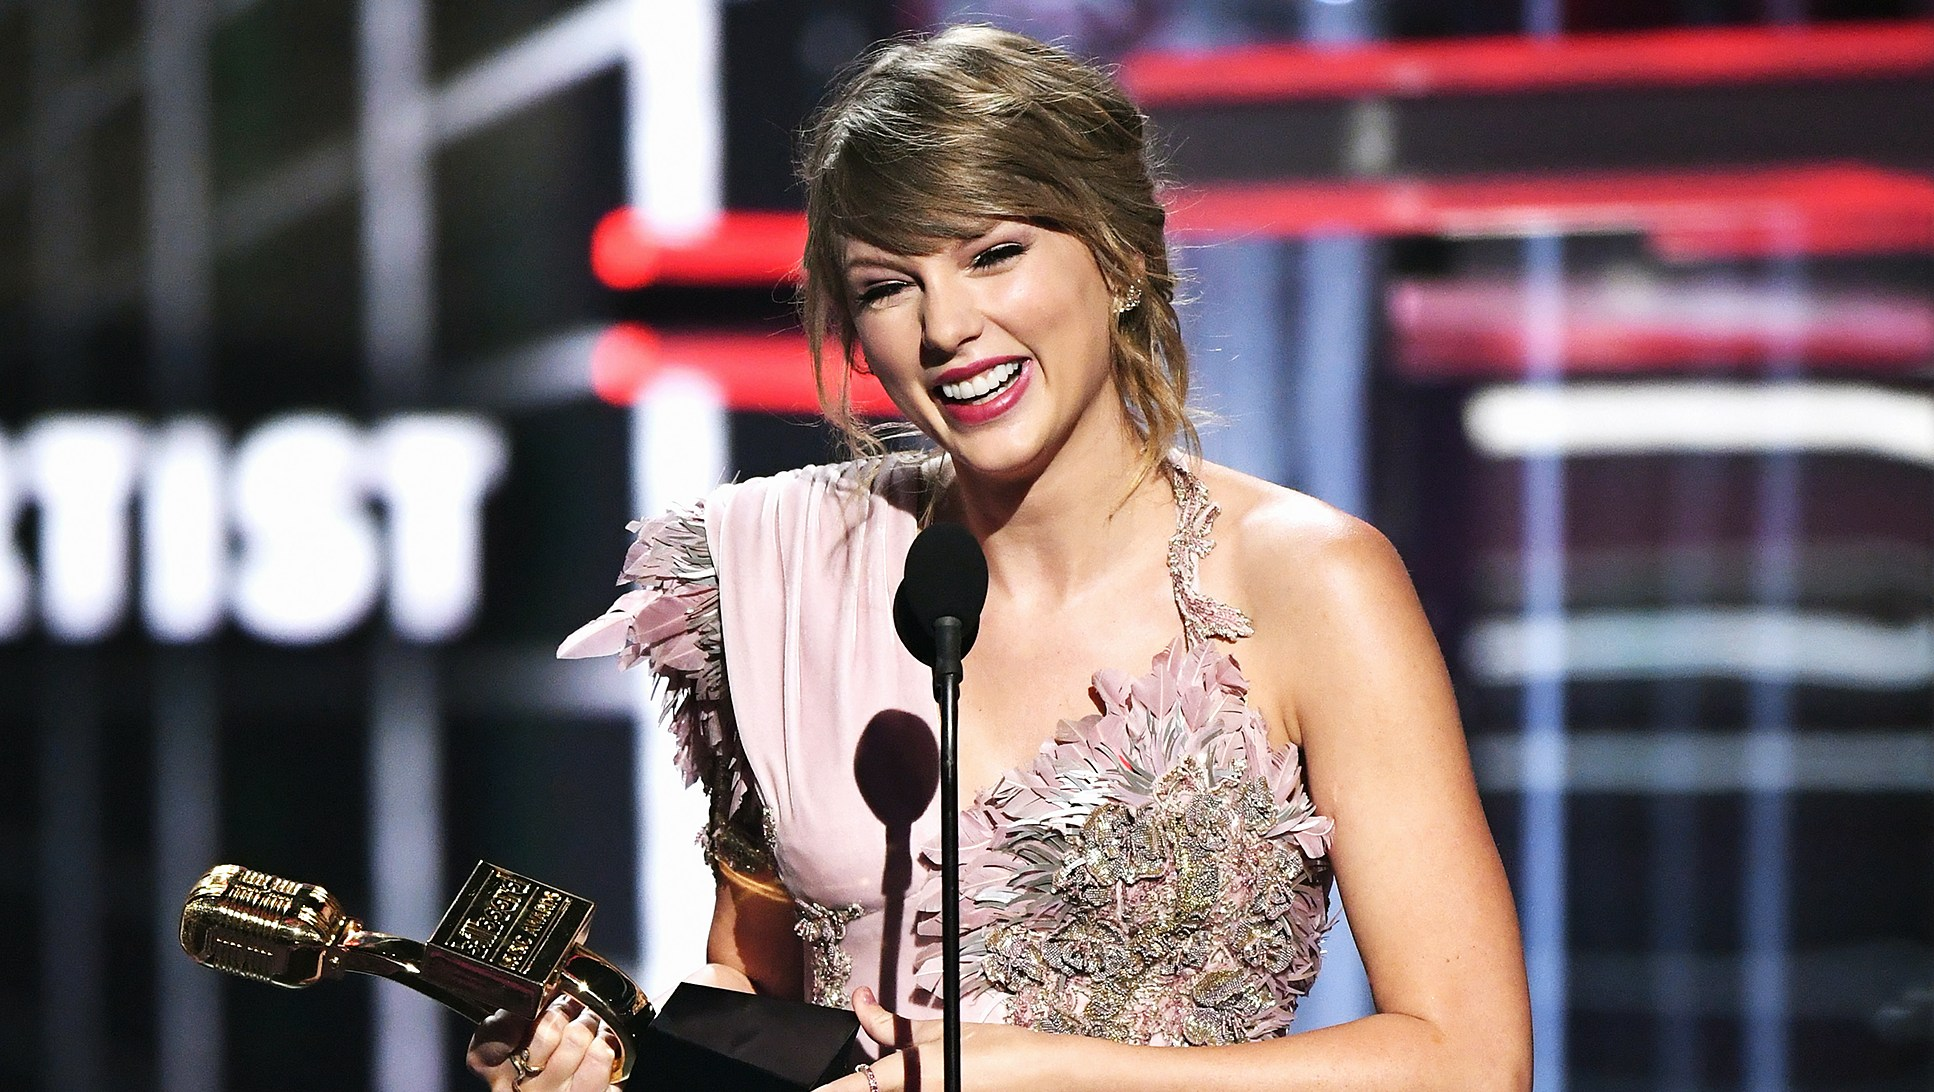 Taylor Swift Billboard Music Awards 2018 Winner